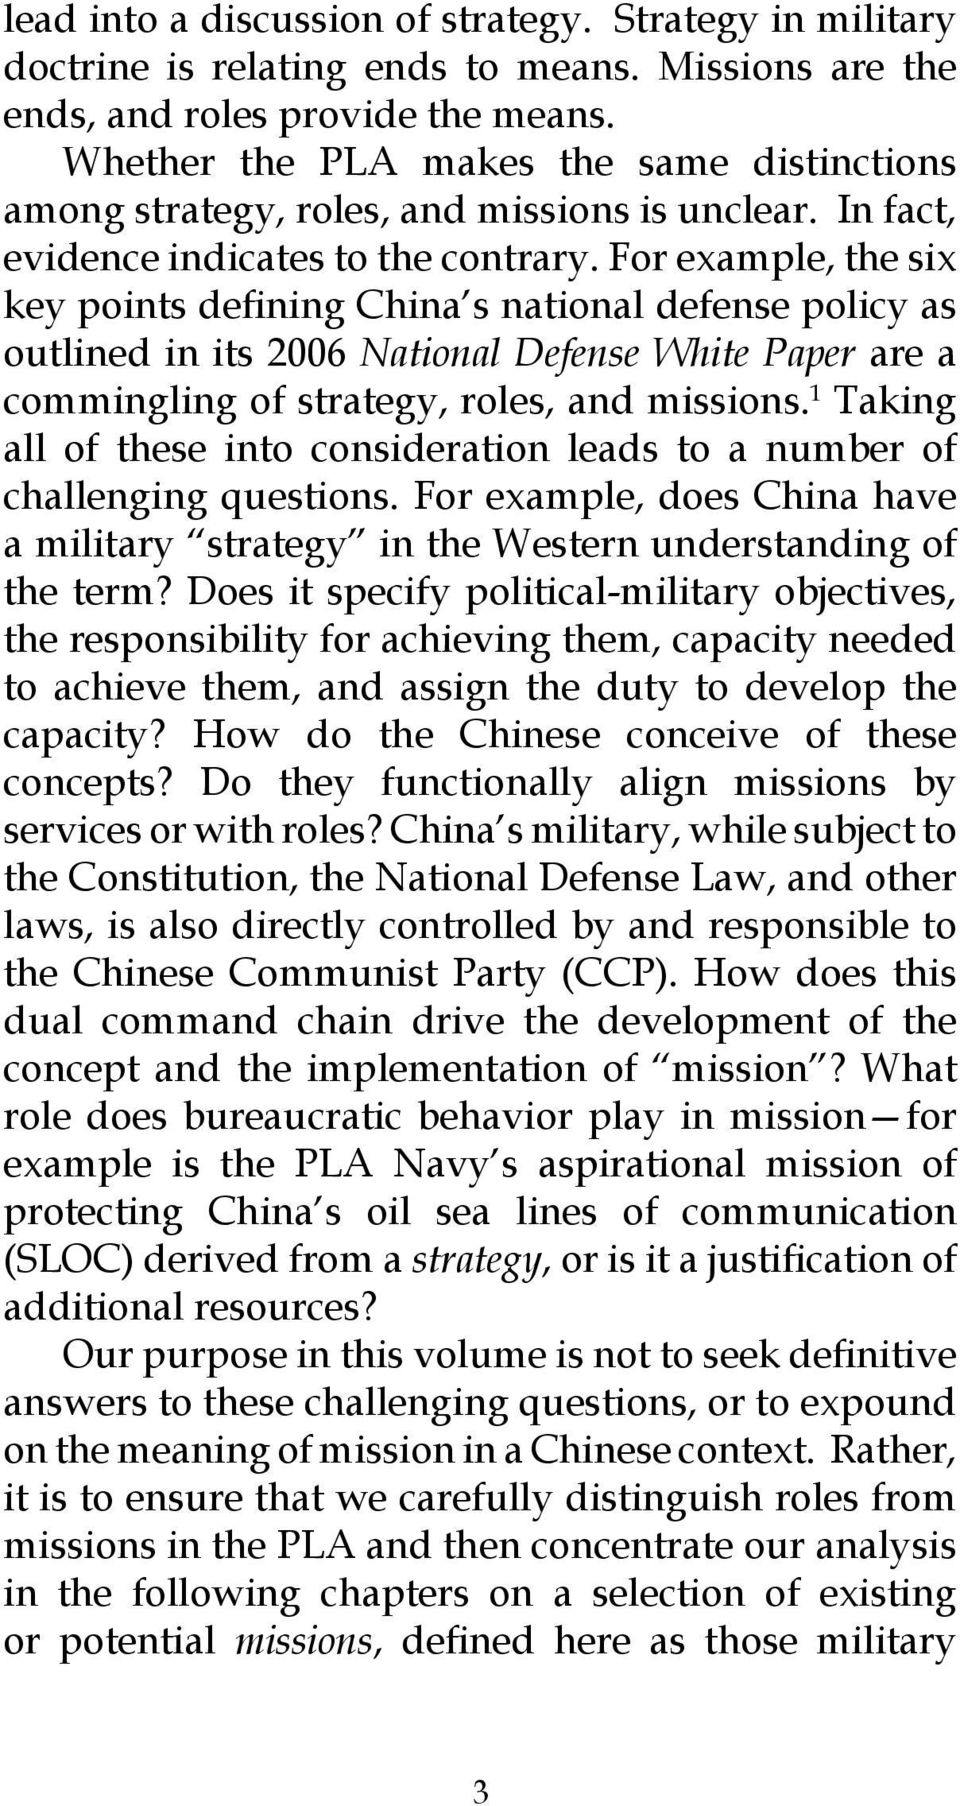 For example, the six key points defining China s national defense policy as outlined in its 2006 National Defense White Paper are a commingling of strategy, roles, and missions.